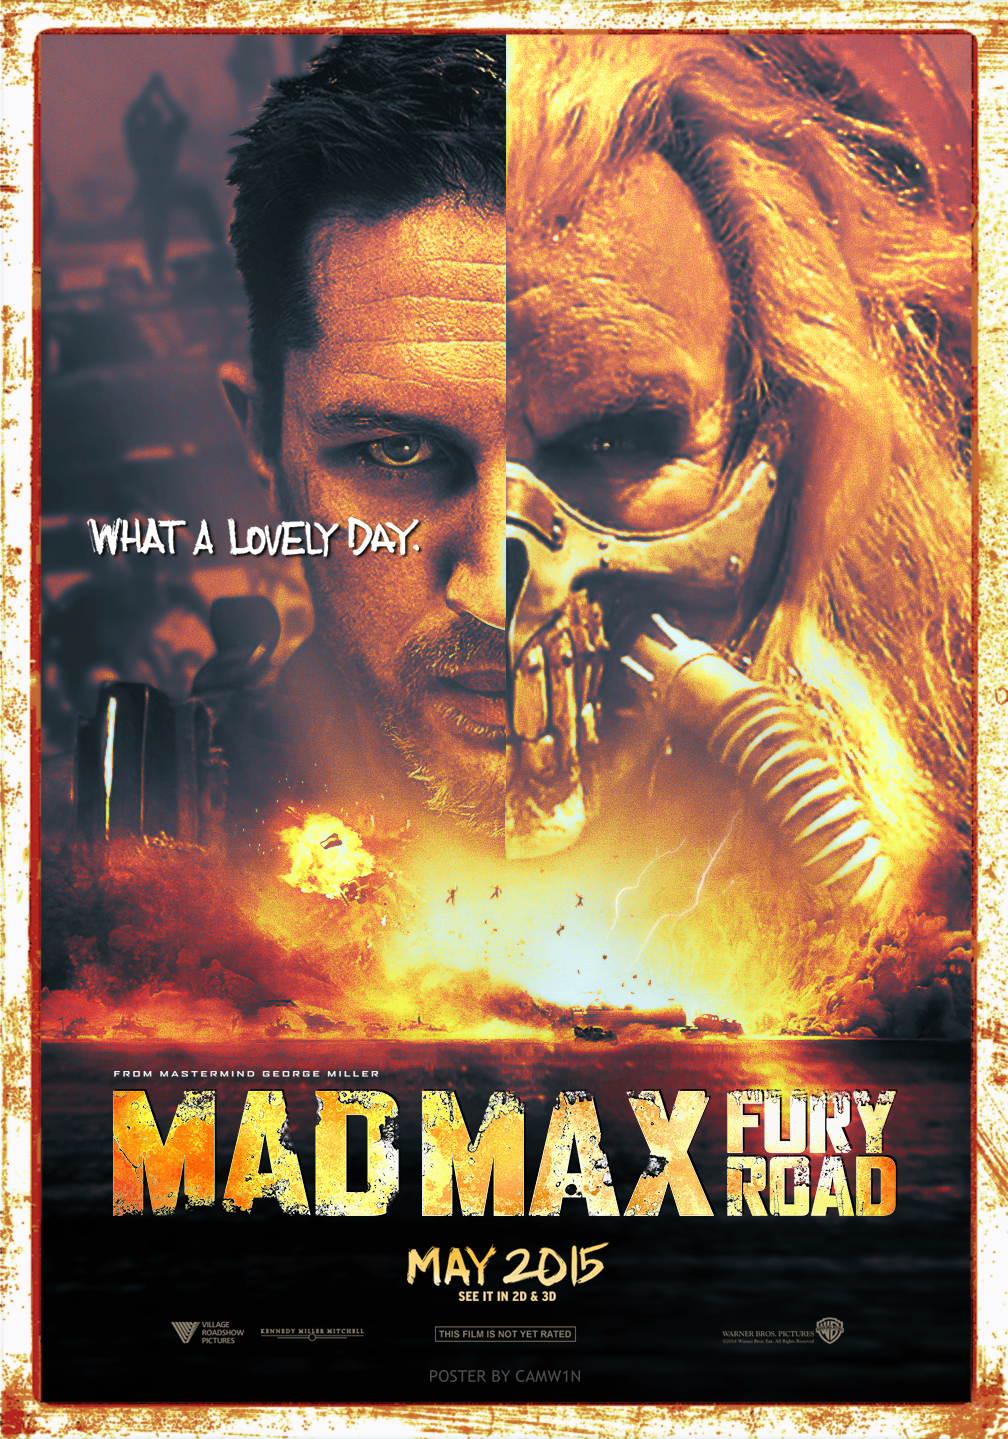 Super Mad Max: Fury Road (2015) - Poster by CAMW1N on DeviantArt WE81